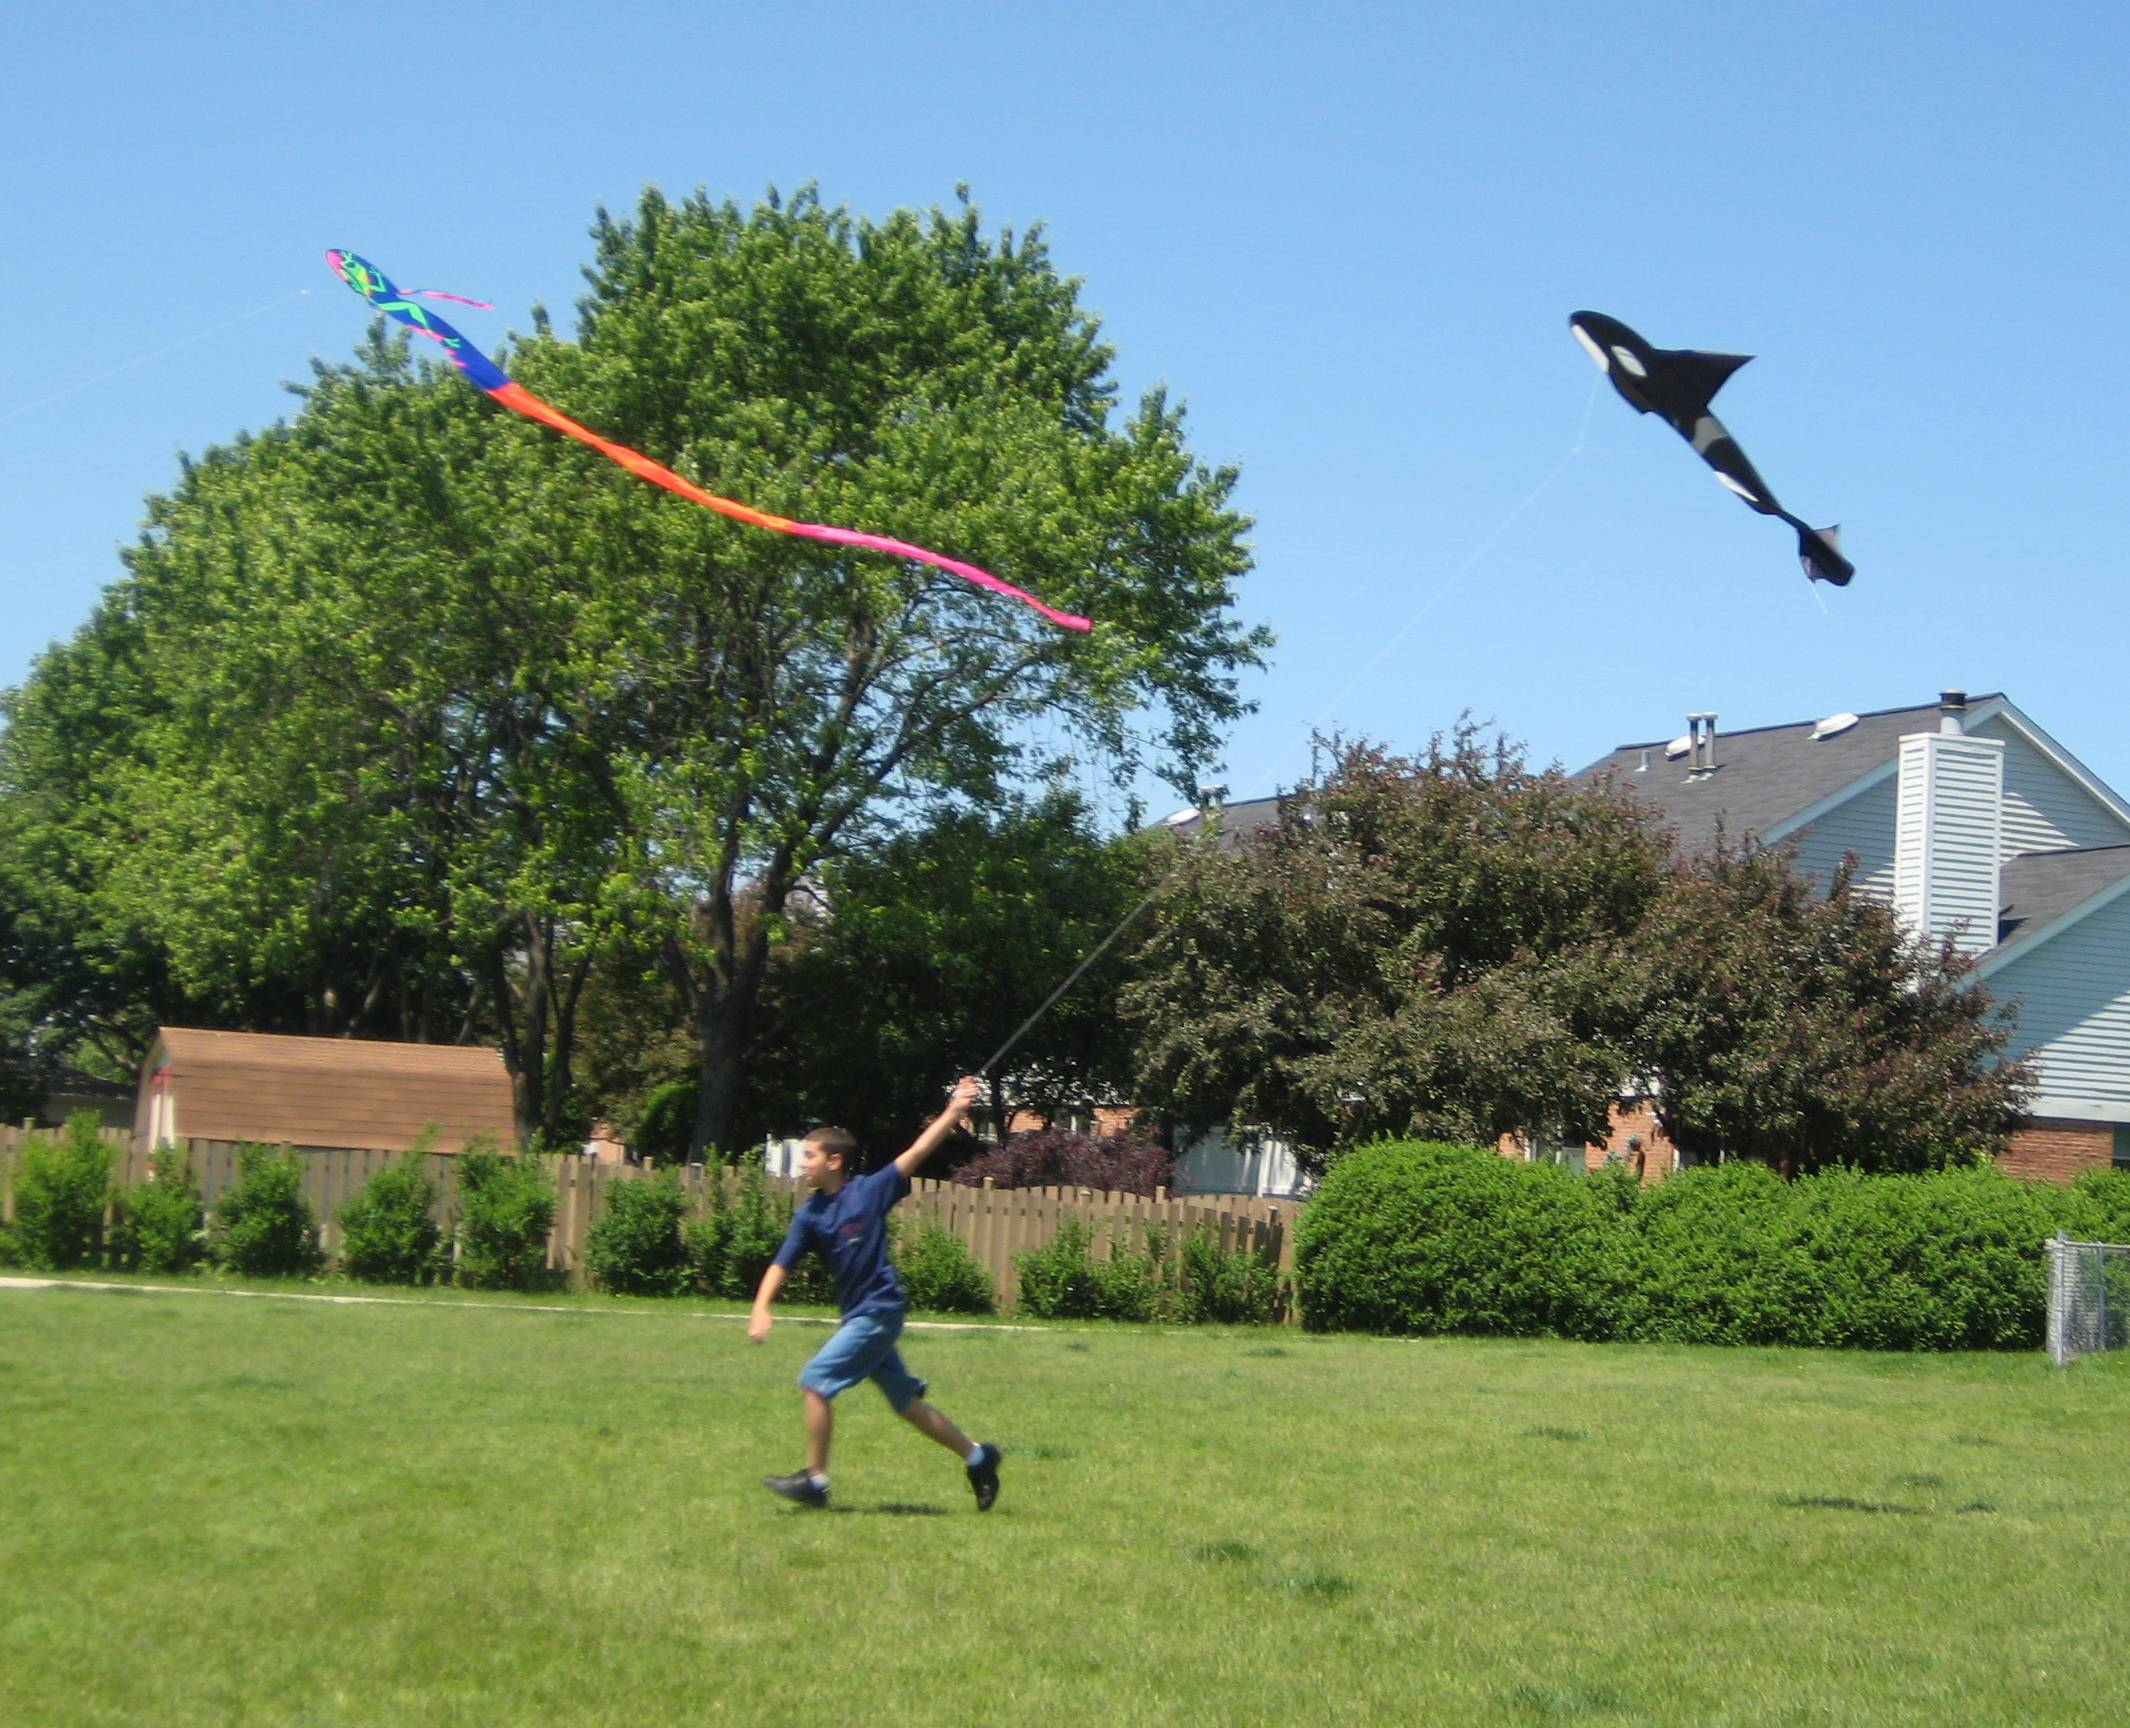 A child flies a kite at a past Flying 4 Kids event.